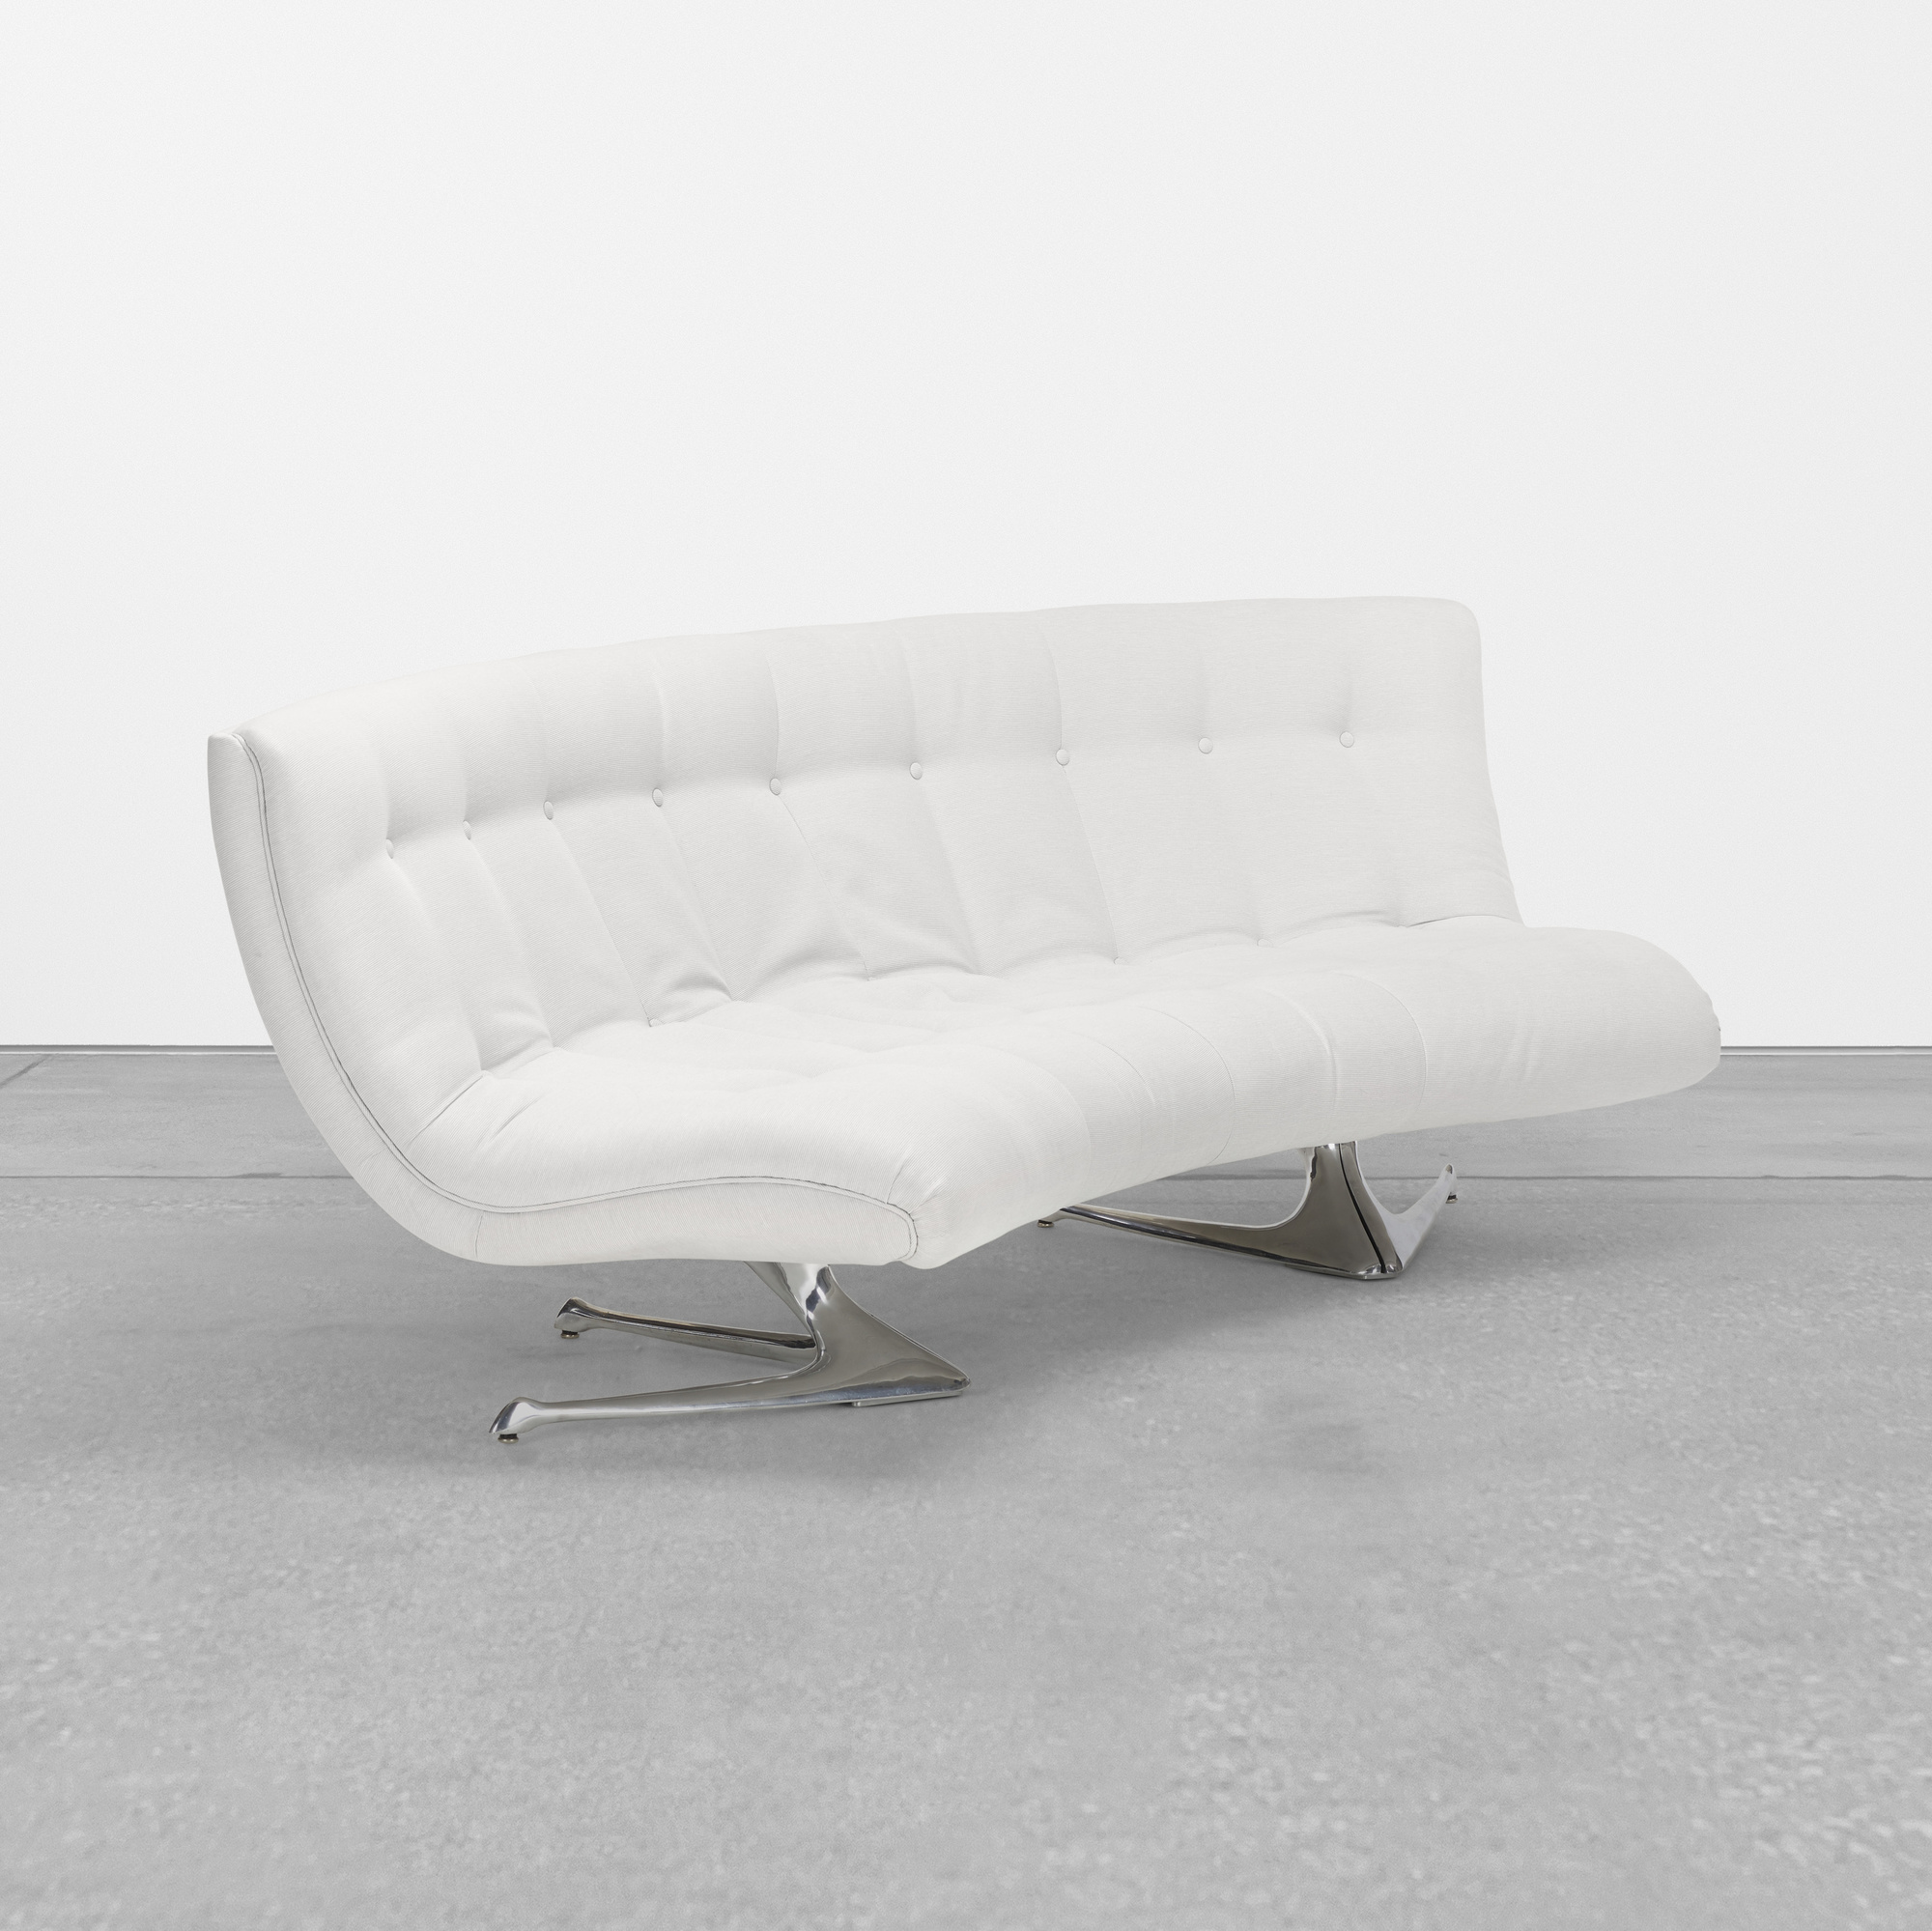 408: Vladimir Kagan / Unicorn sofa (1 of 4)